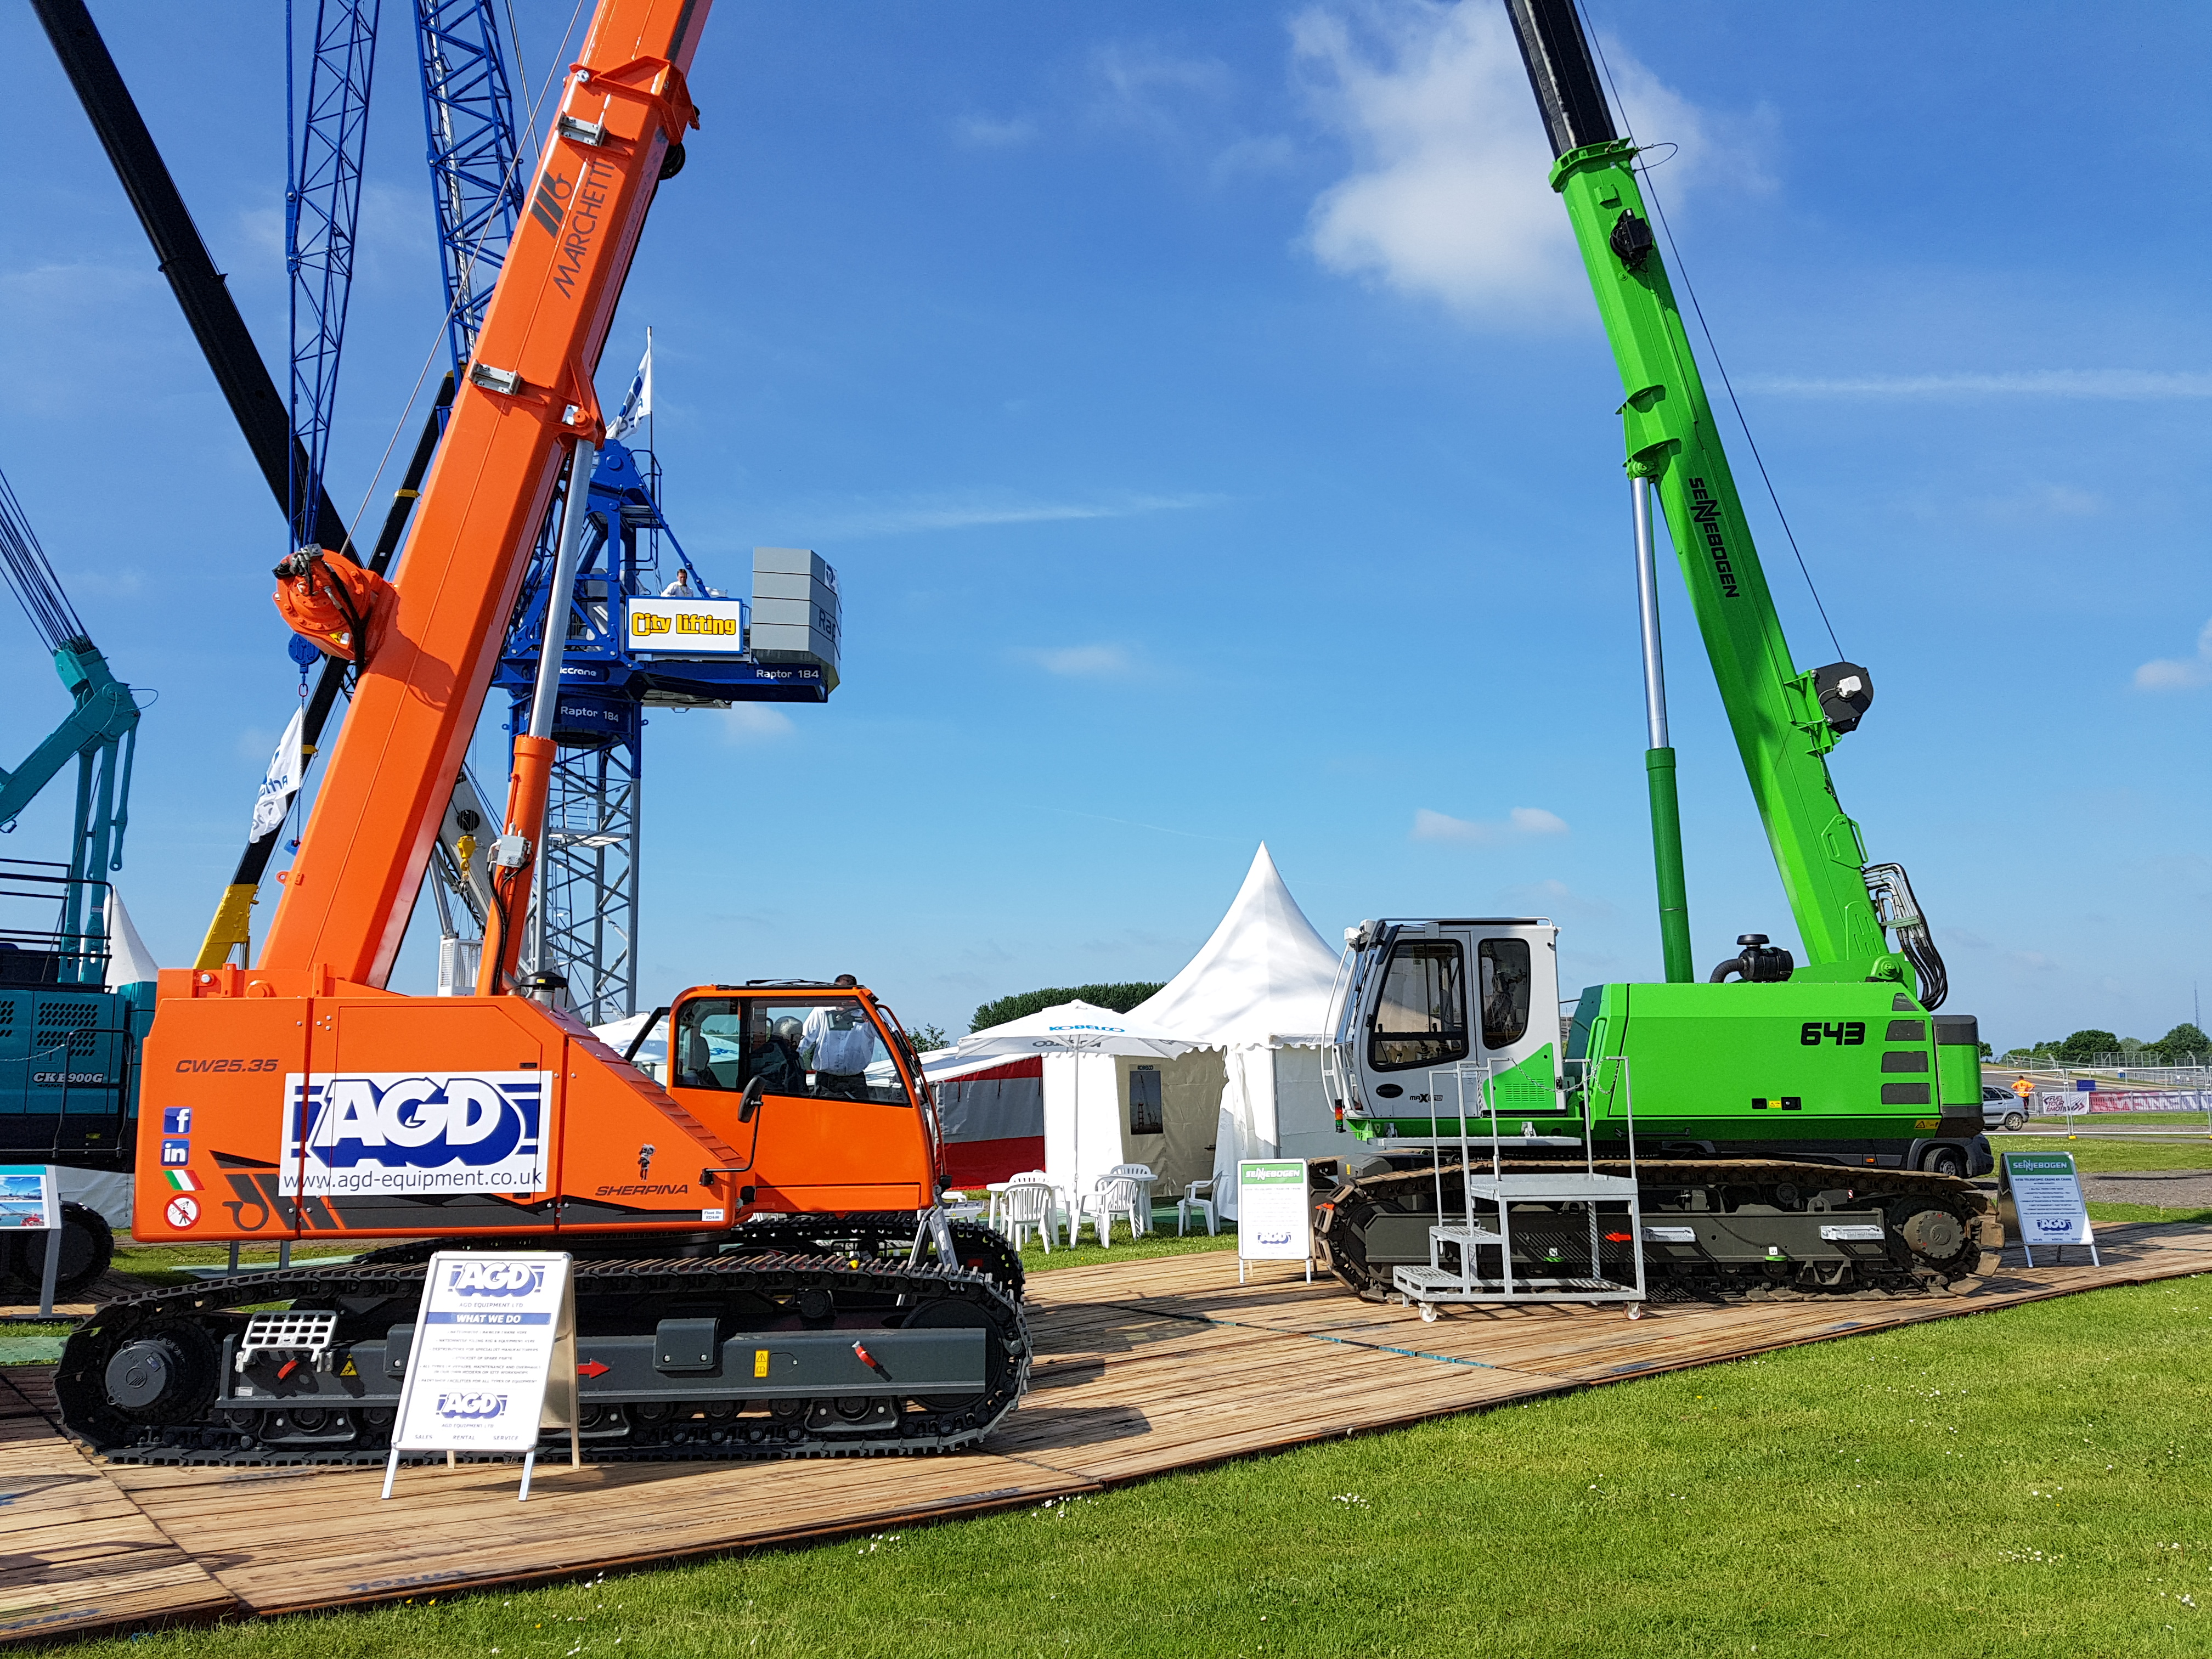 AGD exhibits at Vertikal Days Silverstone 2017